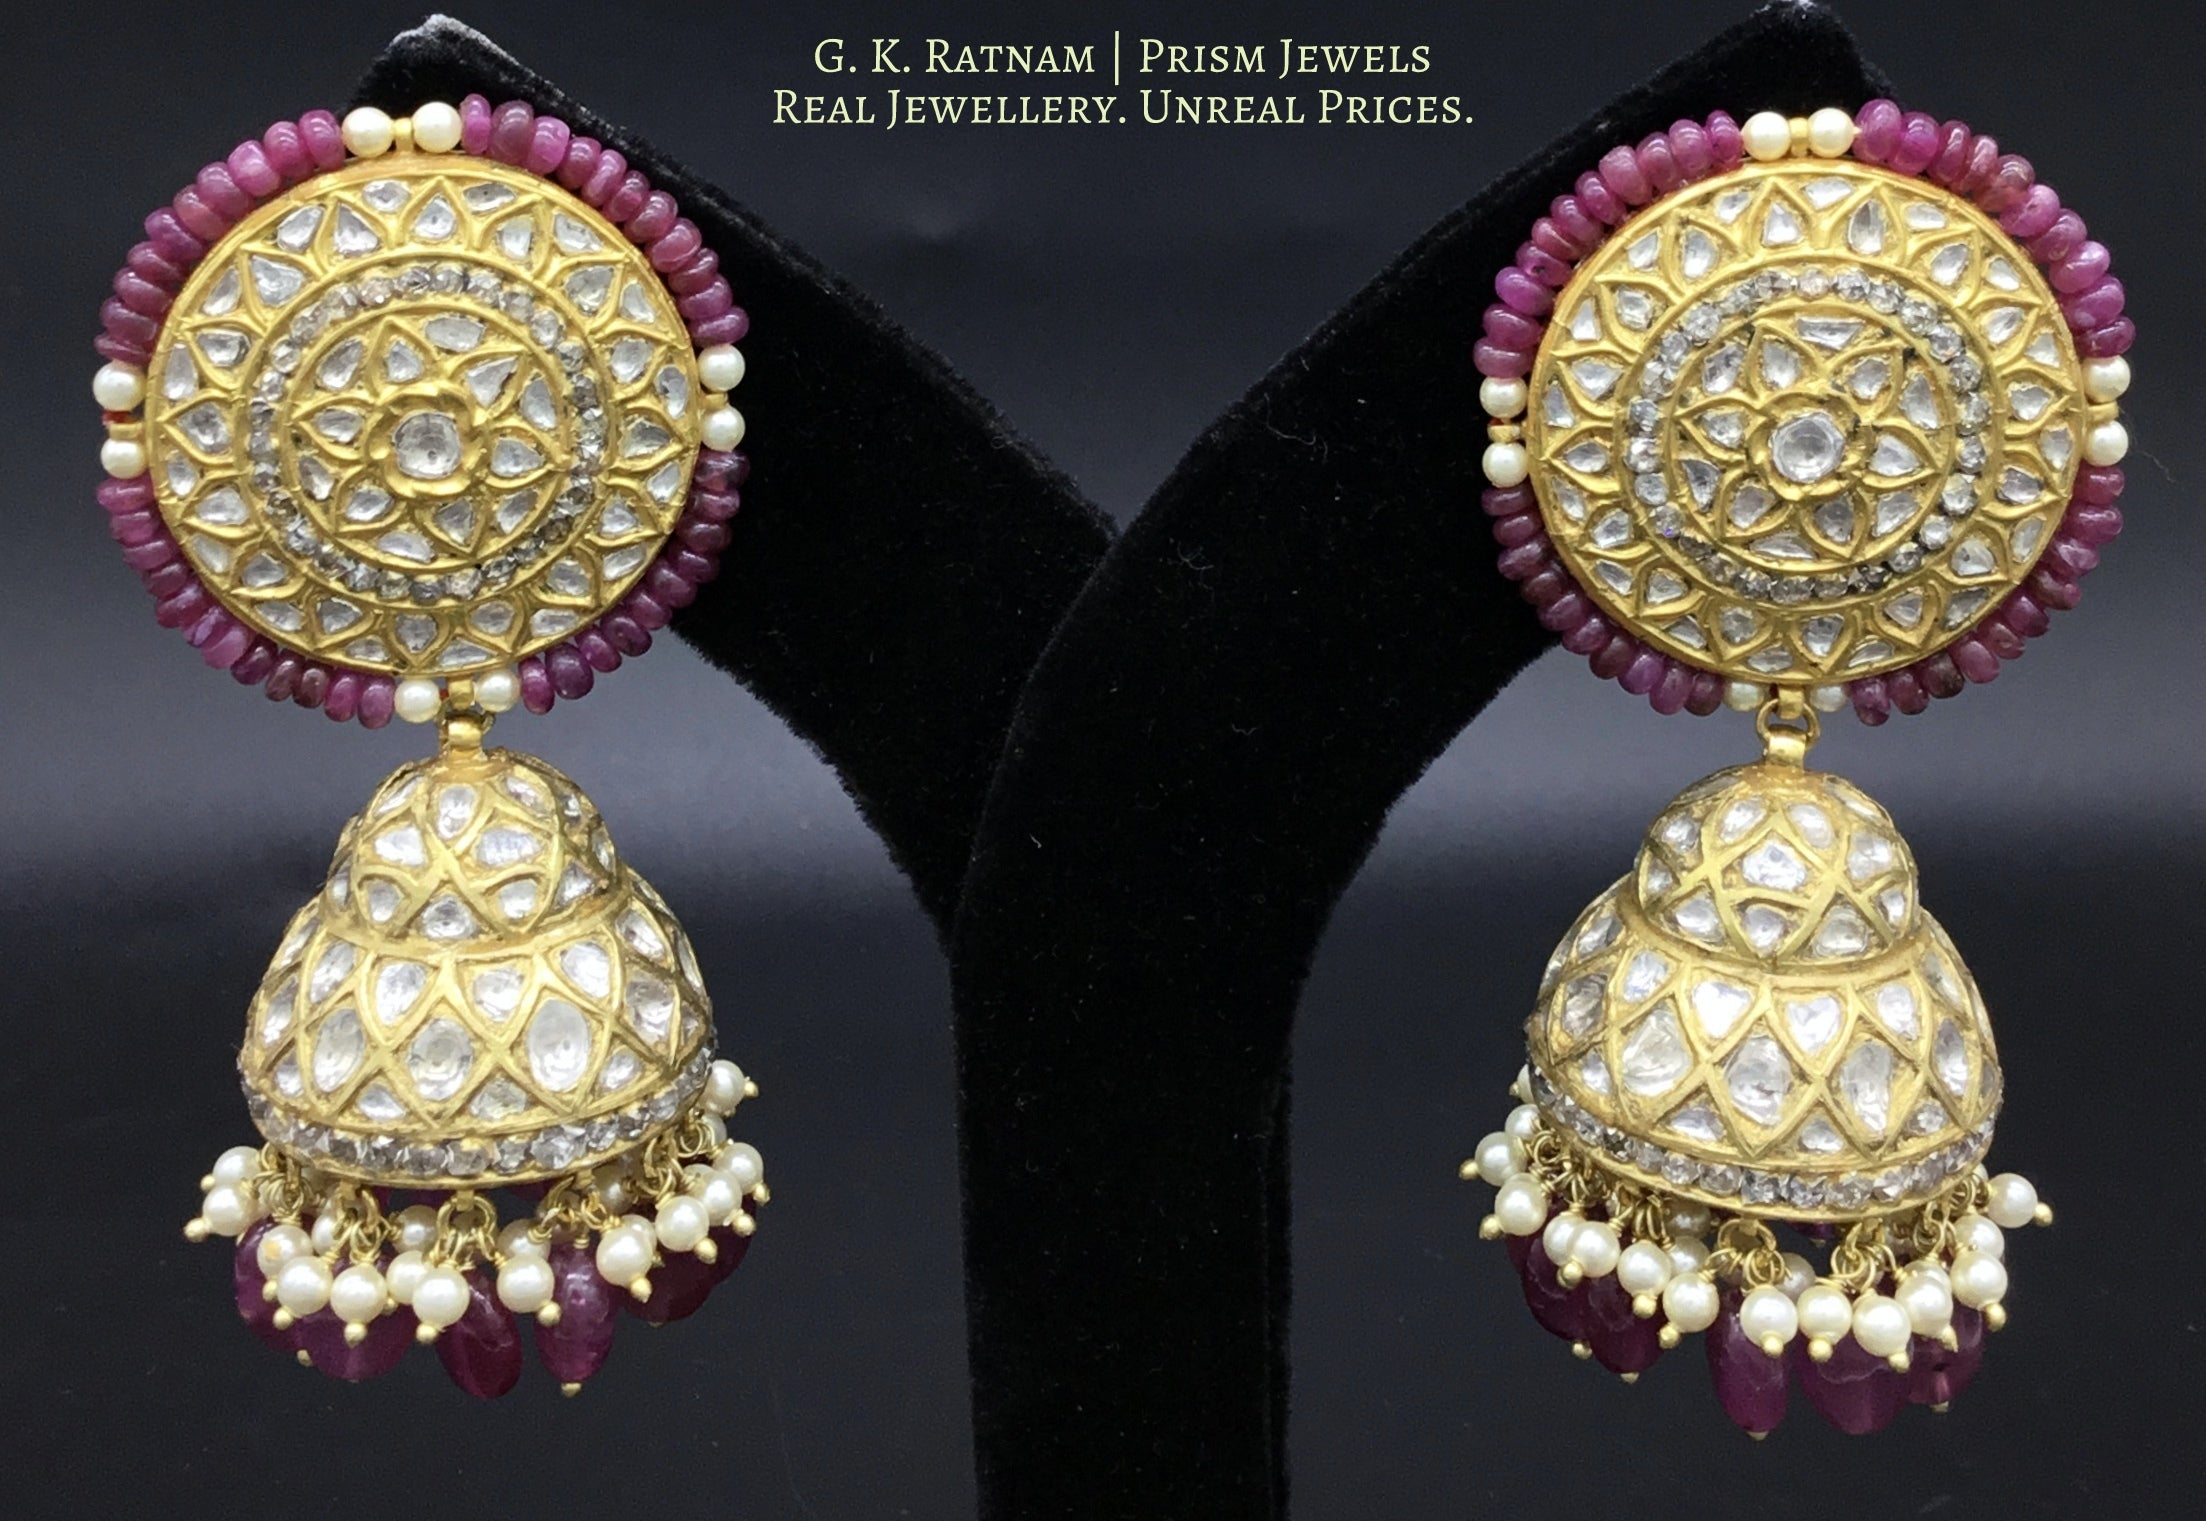 23k Gold and Diamond Polki Karanphool Jhumki Earring Pair with lustrous pink rubies and pearls - gold diamond polki kundan meena jadau jewellery